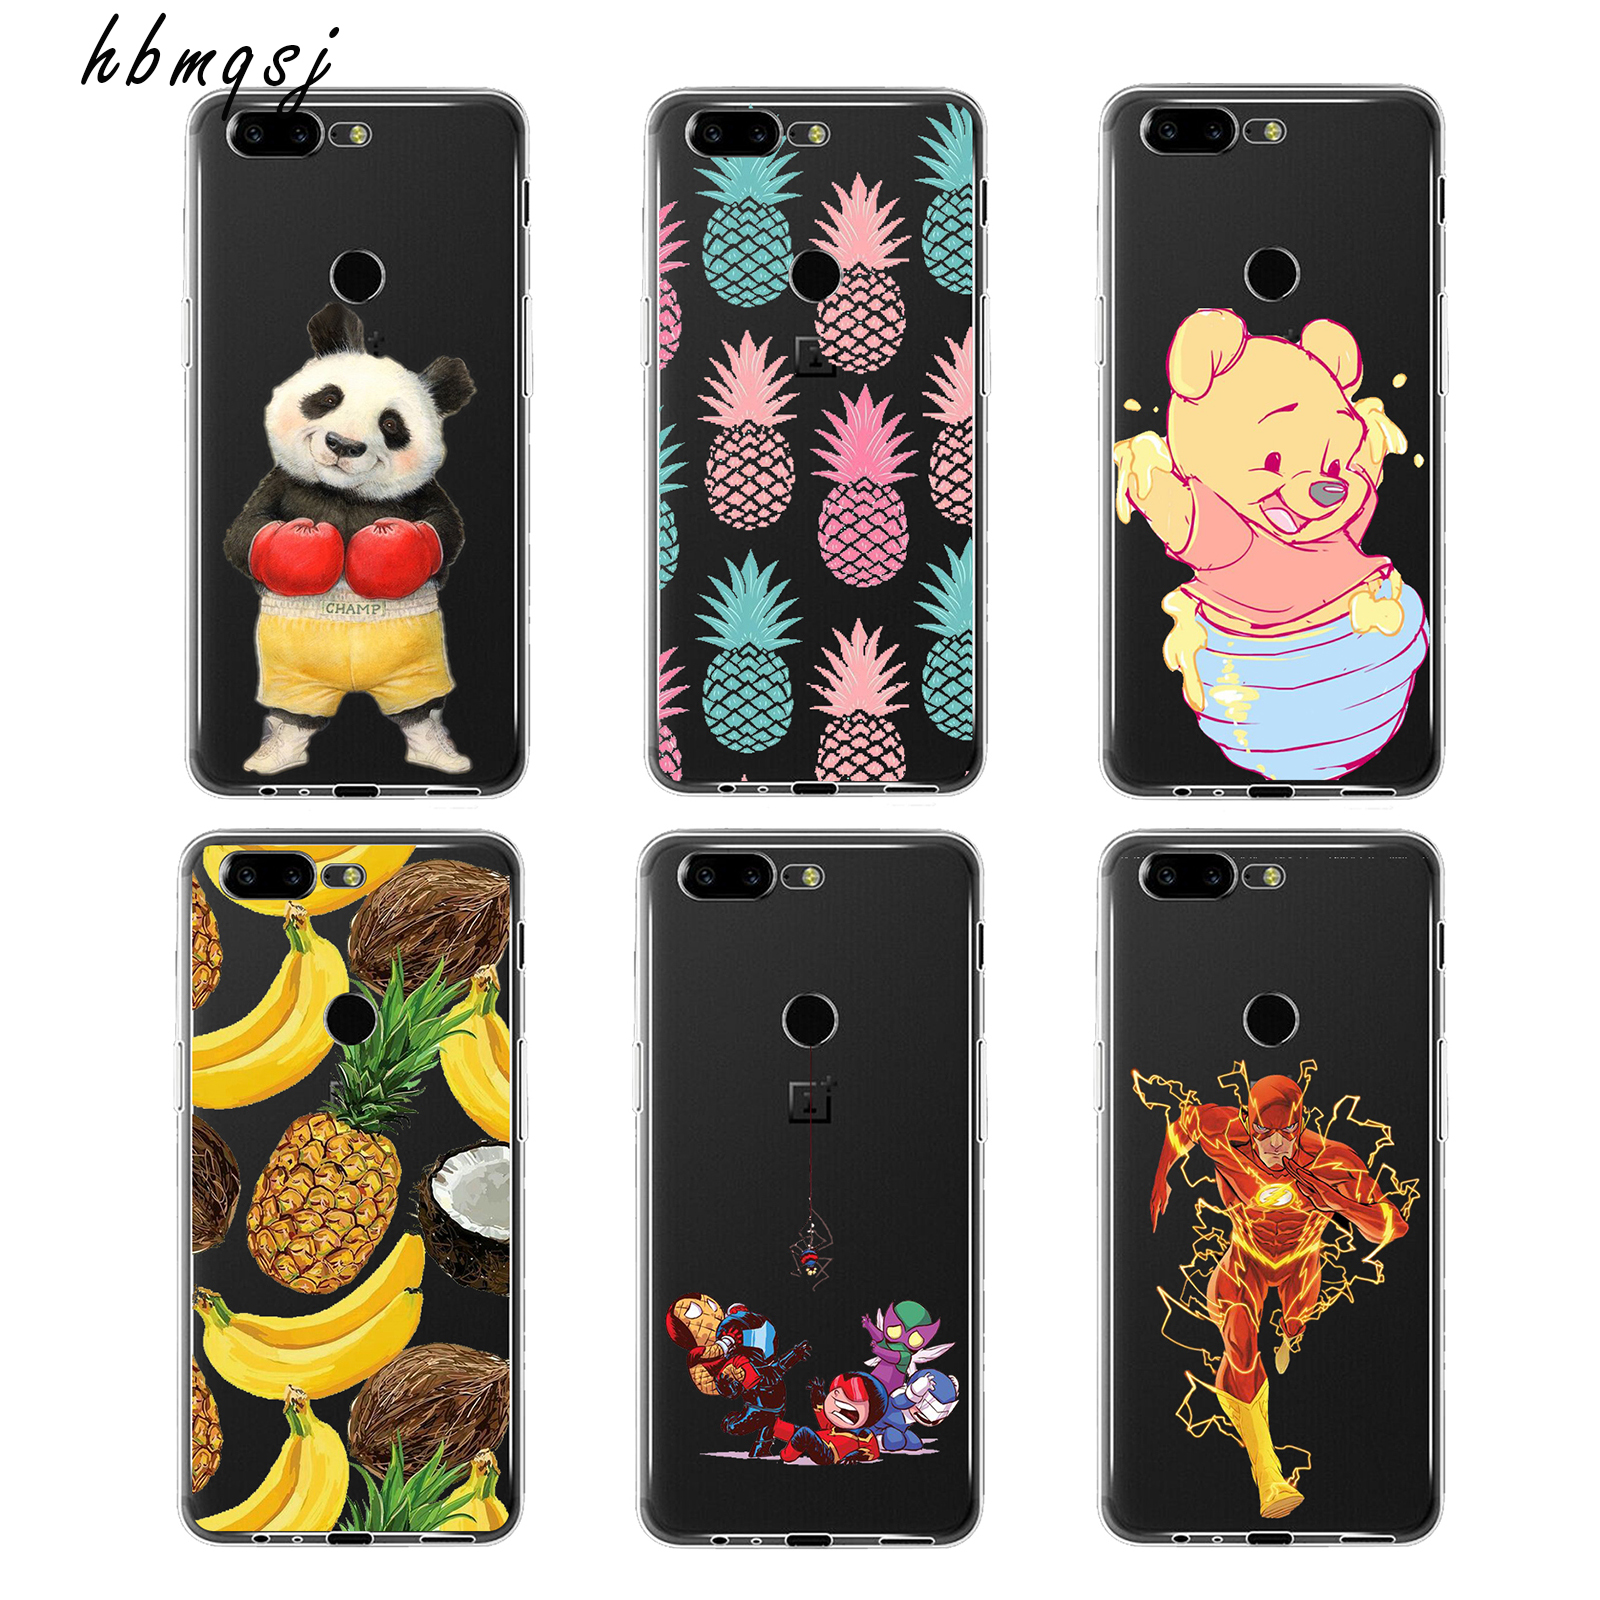 Business for oneplus 5t 5 t case Silicone Soft Cover cartoon character cat pussy banana pineapple fruit cute painted phone armor